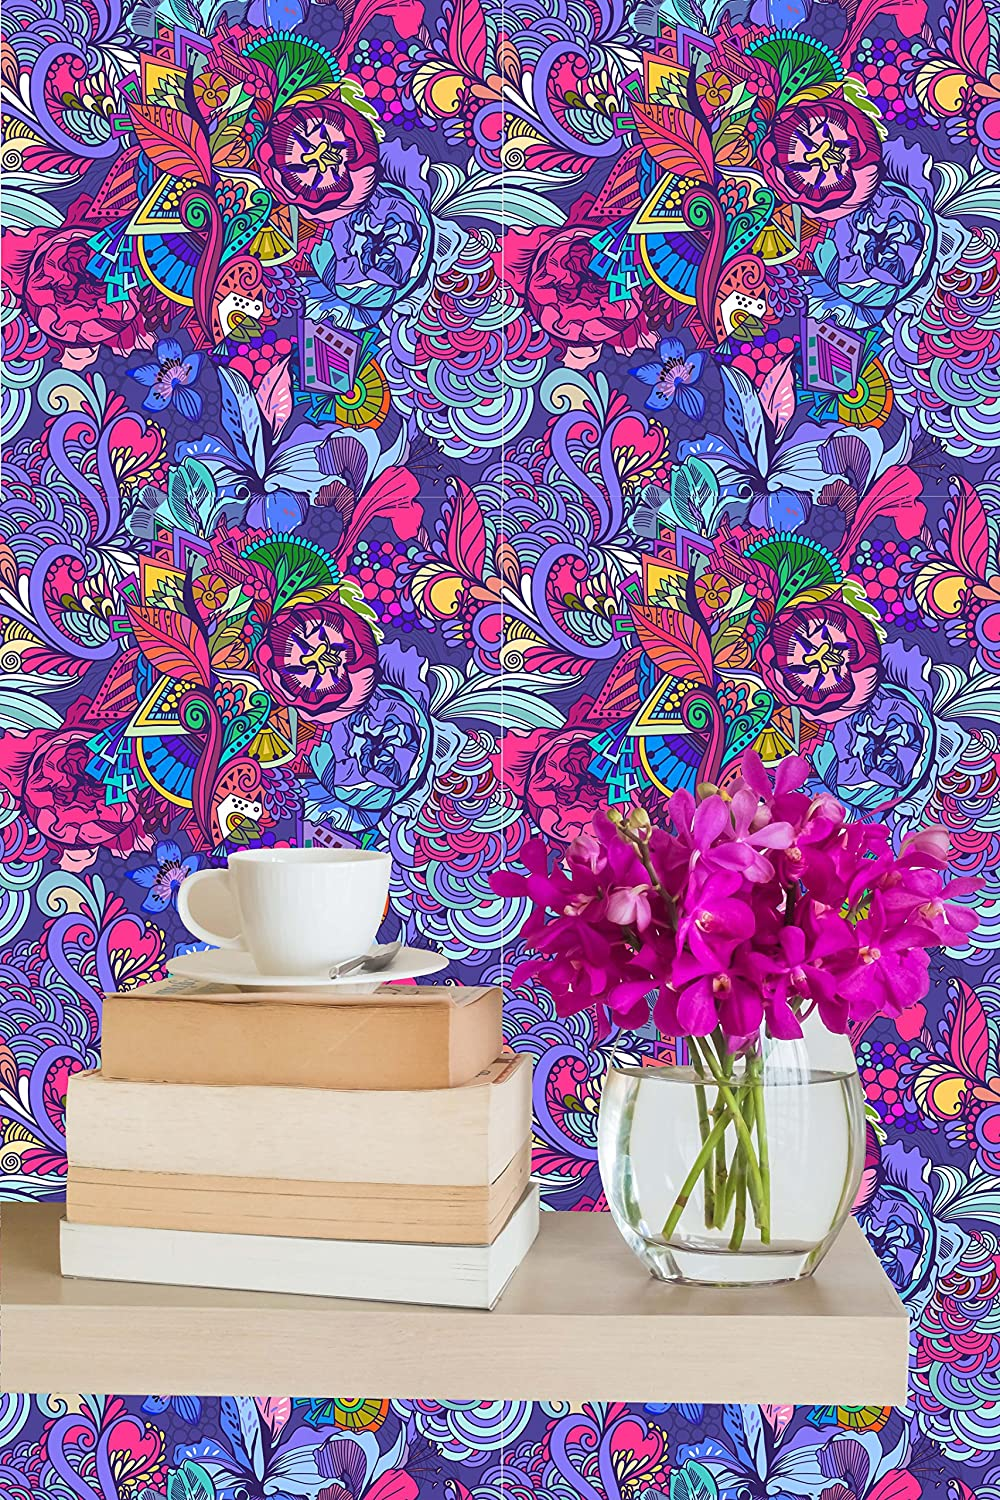 Abstract Flower Wallpapers Collection 08 Page 3 4kwallpaper Org